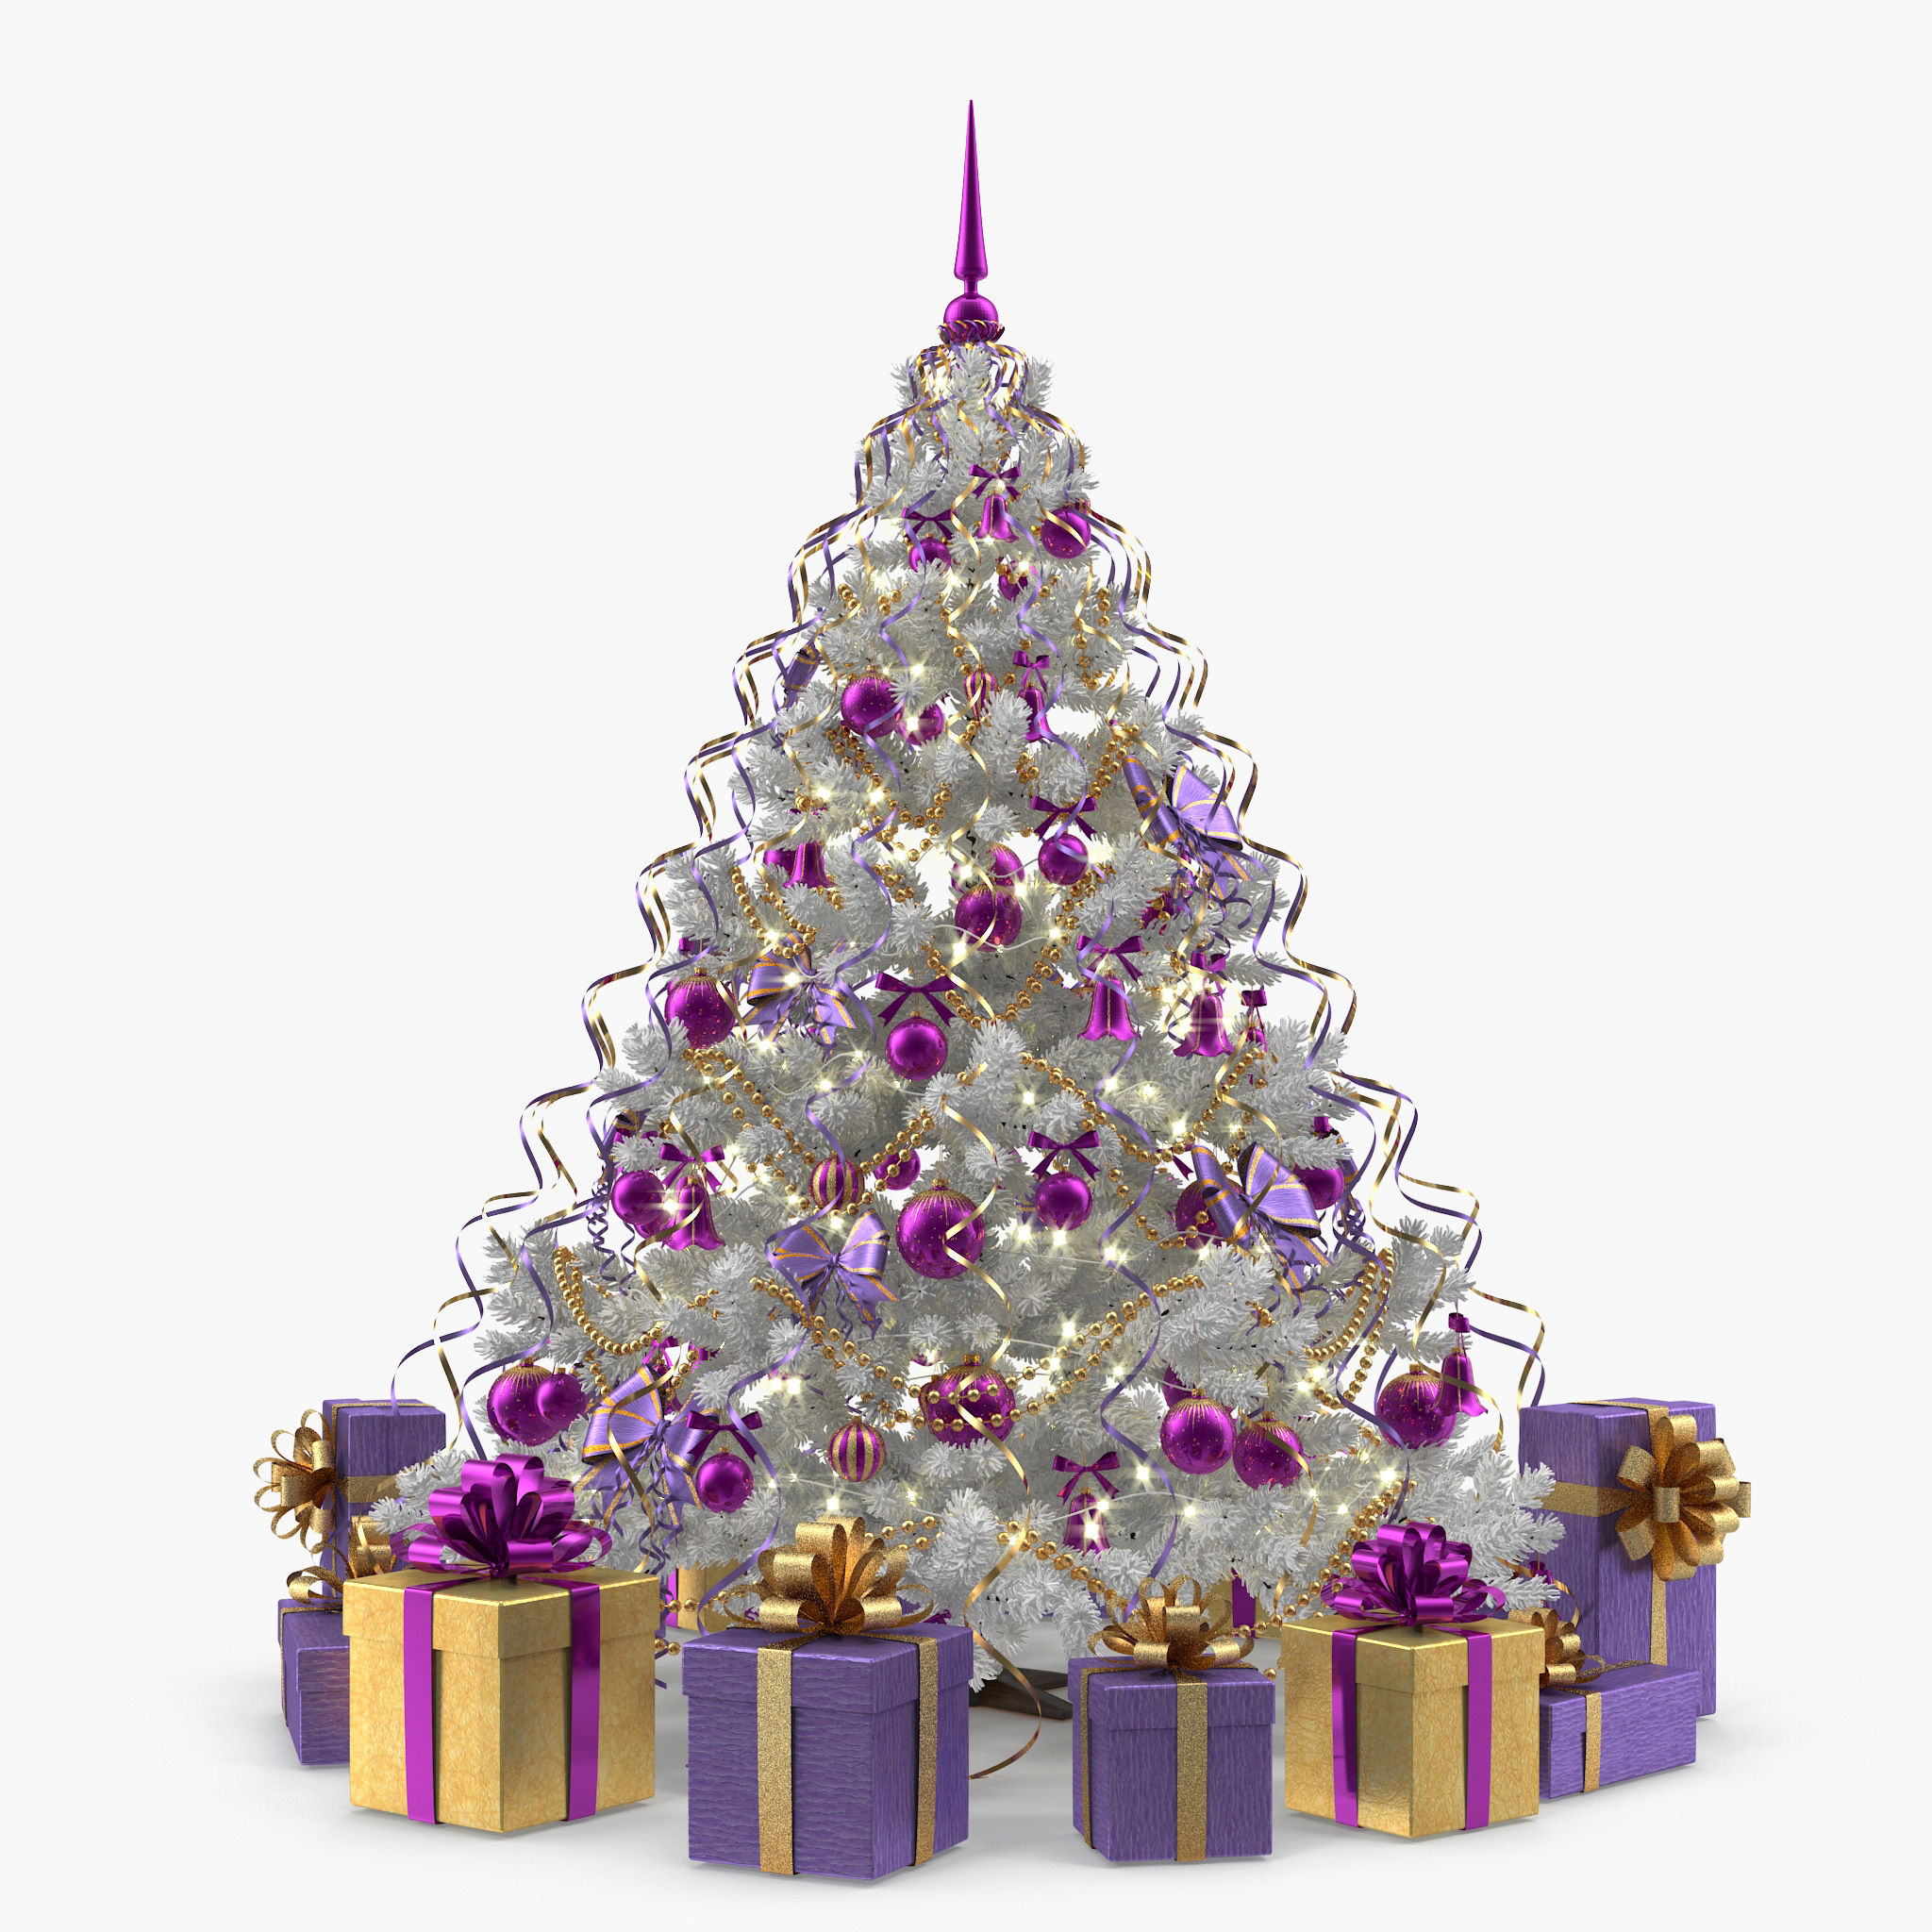 White Christmas Tree With Lights.White Christmas Tree With Purple Ornaments